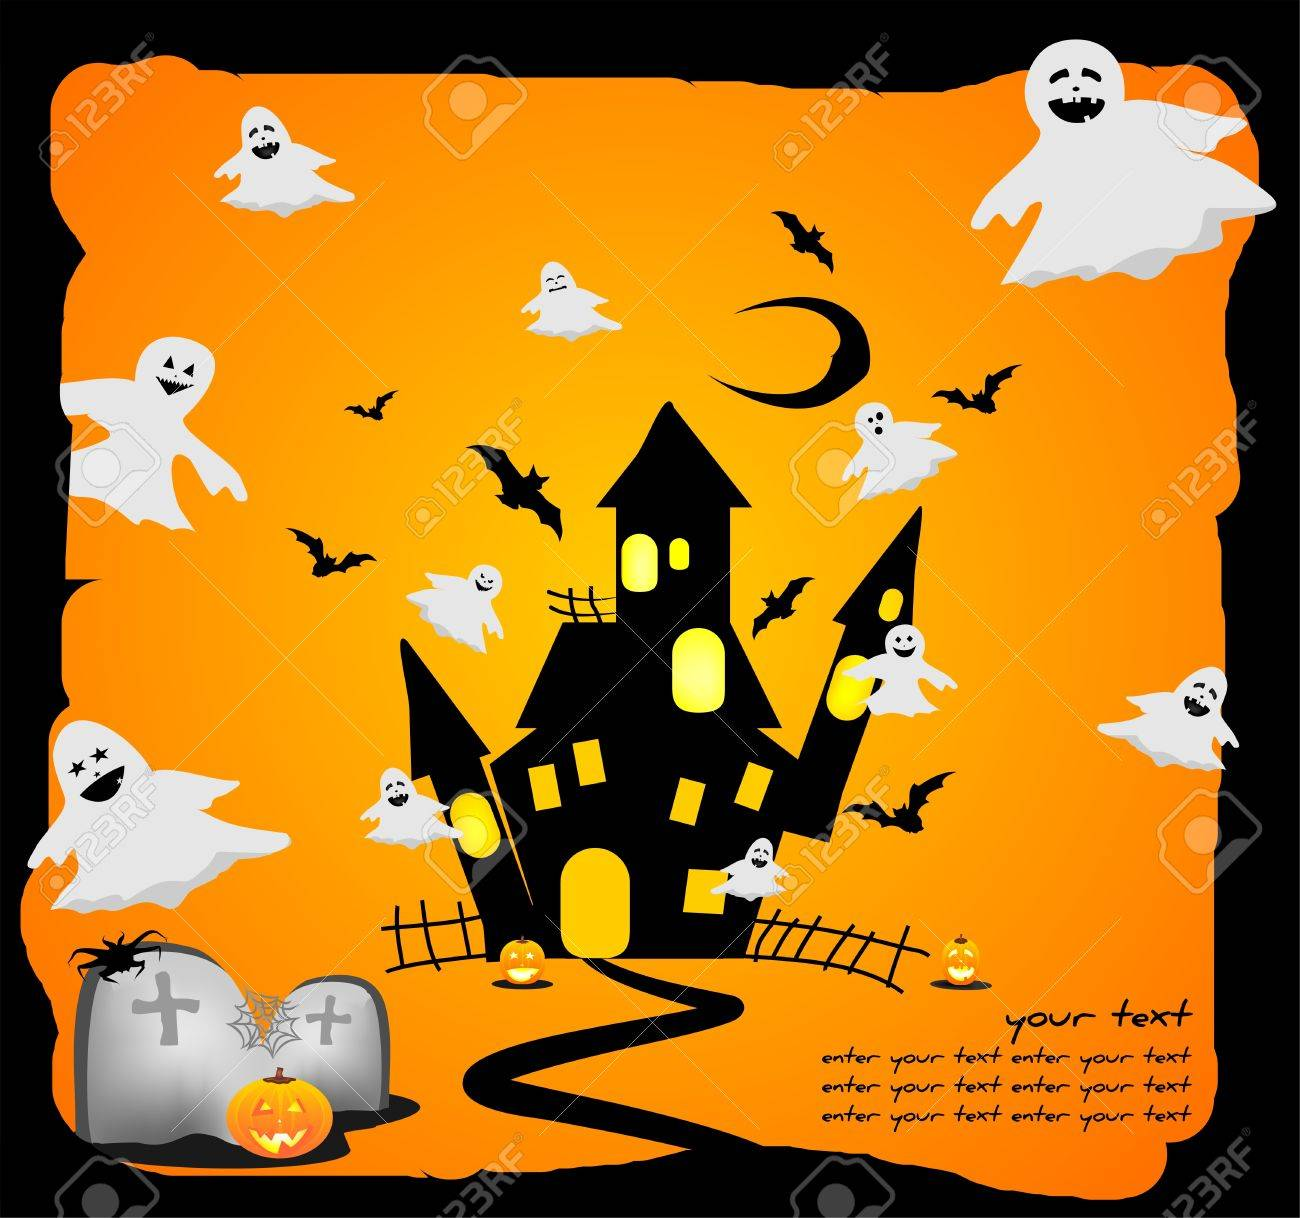 Funny Halloween Background With Ghosts Royalty Free Cliparts ...